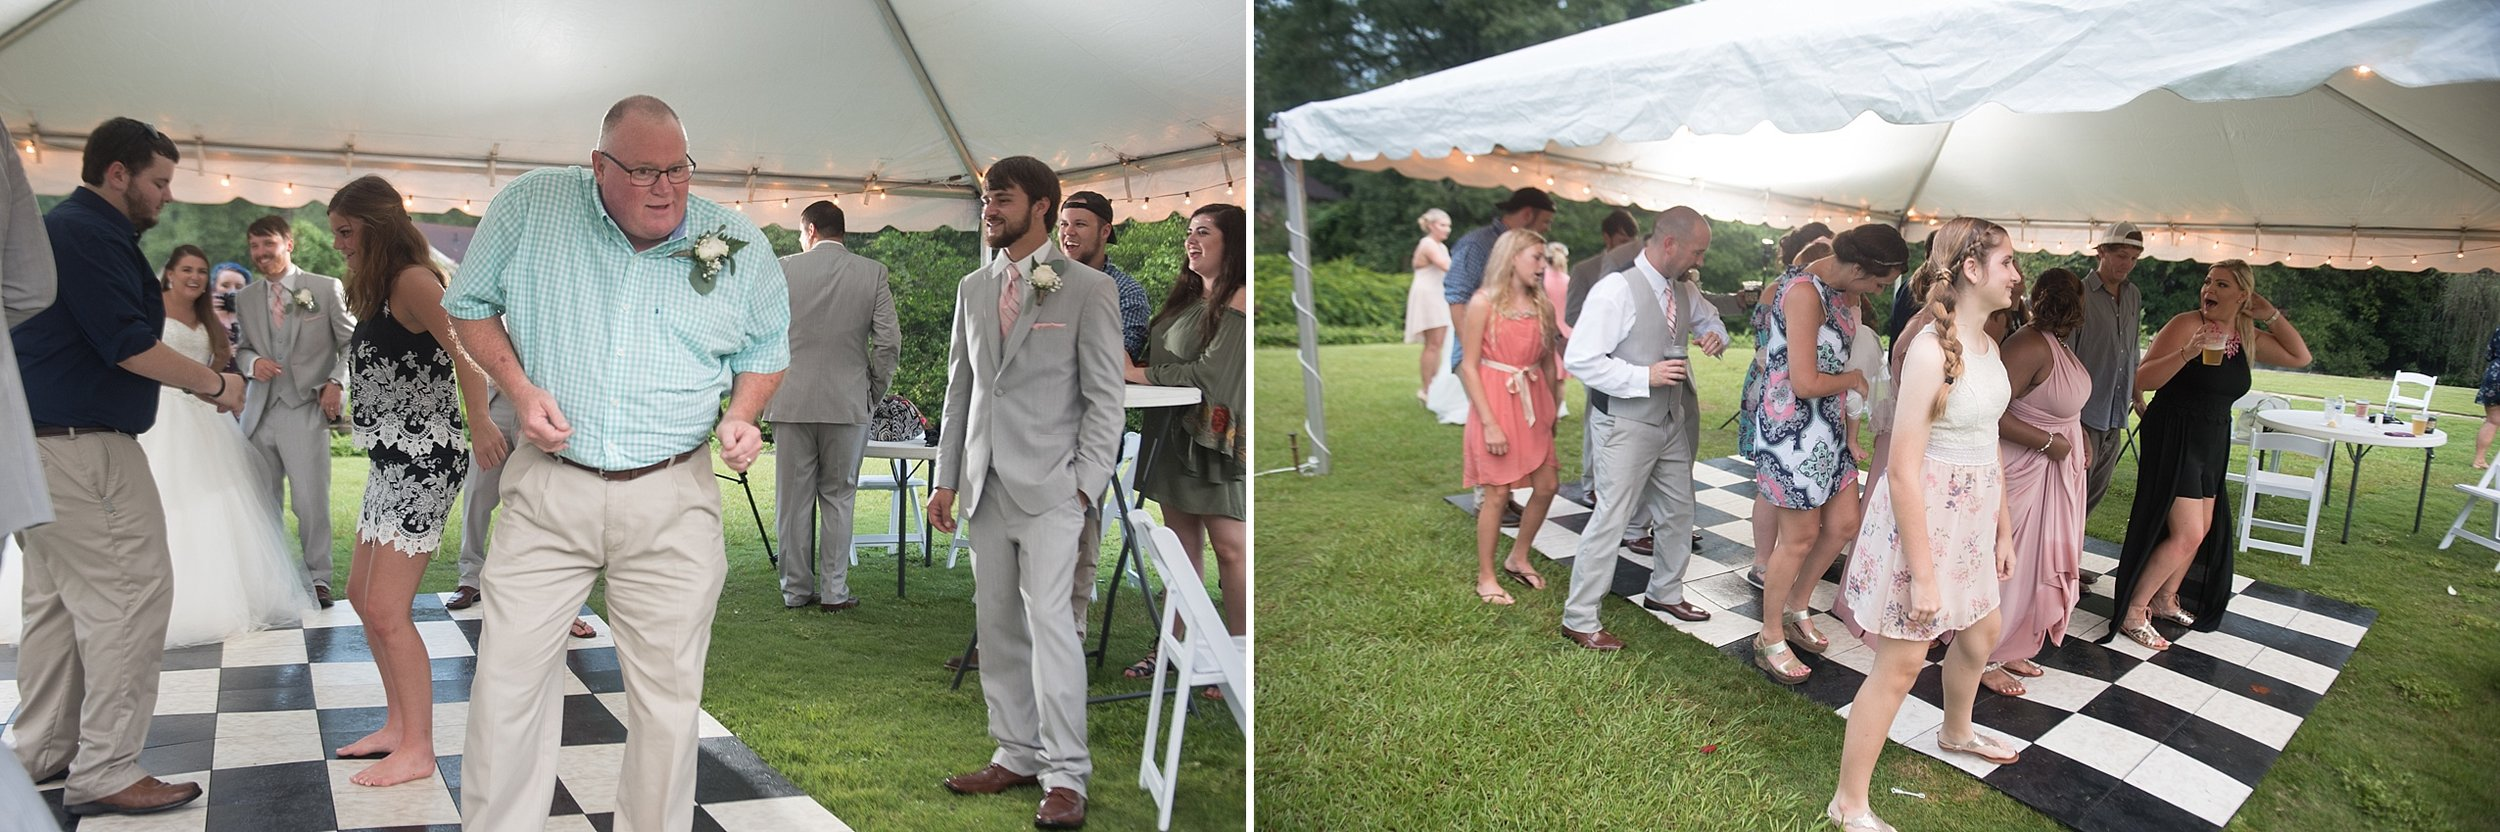 wedding guests show their dances moves